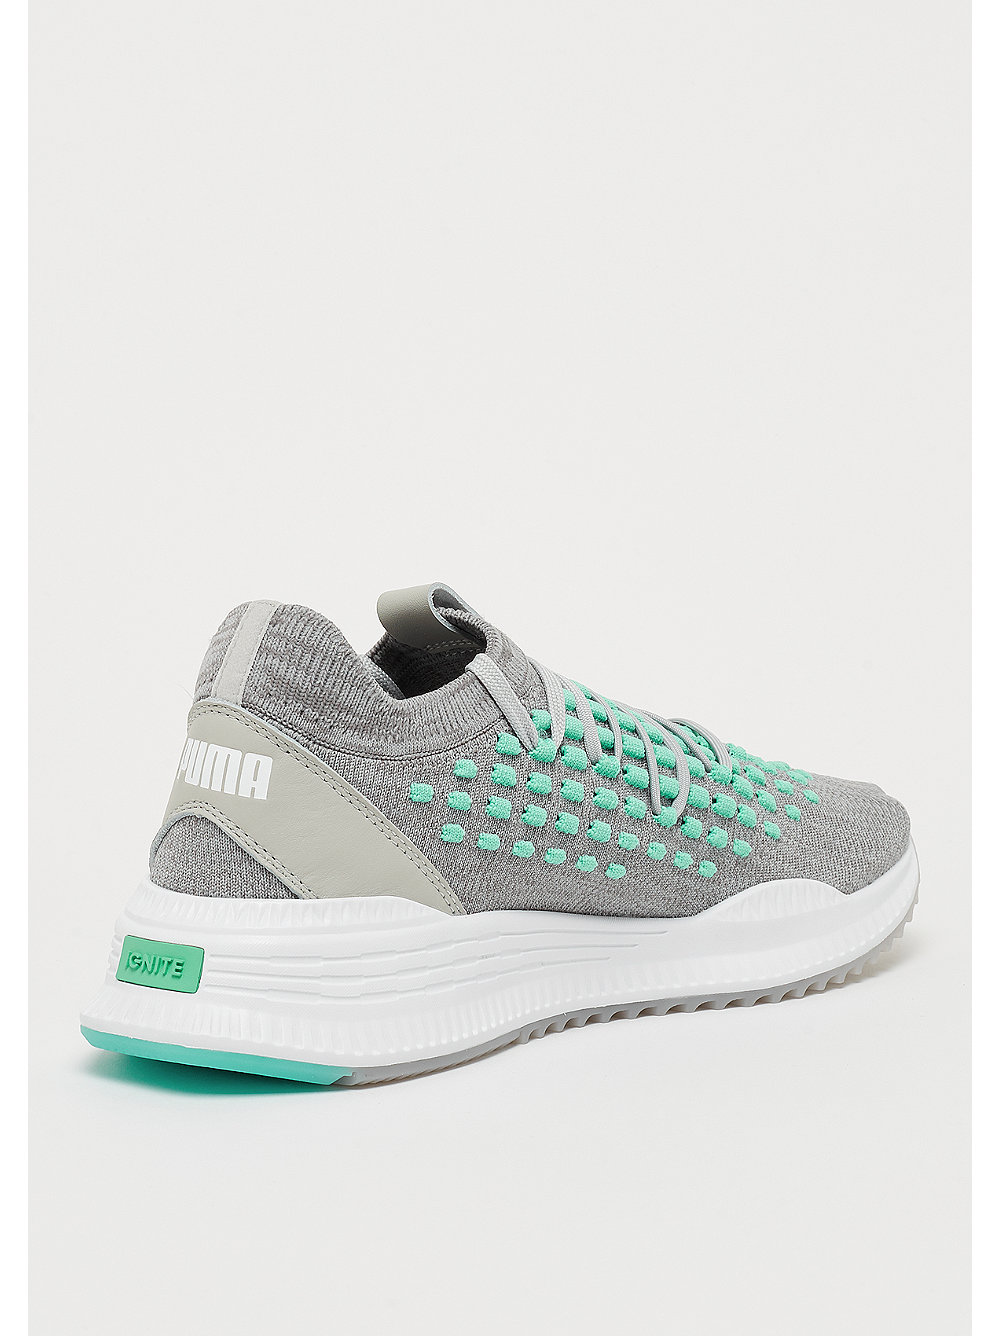 newest 36d71 e08b1 Puma AVID Fusefit gray violet biscay green puma white